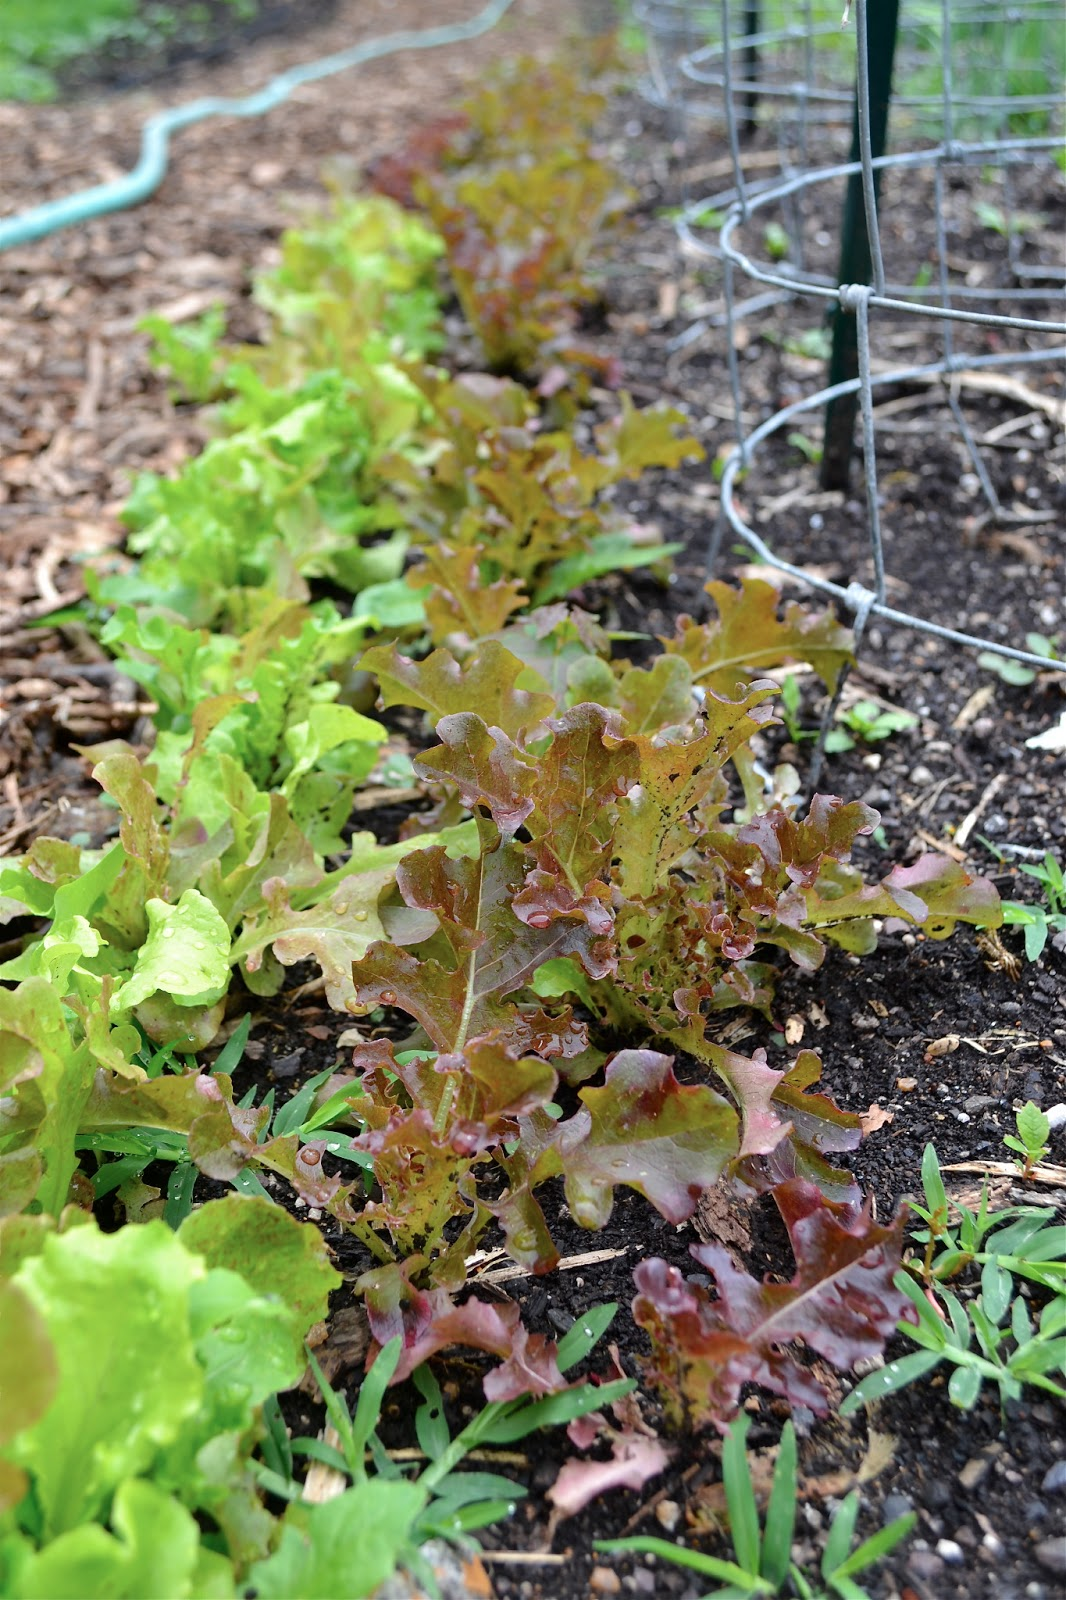 Oak leaf red lettuce in a community garden